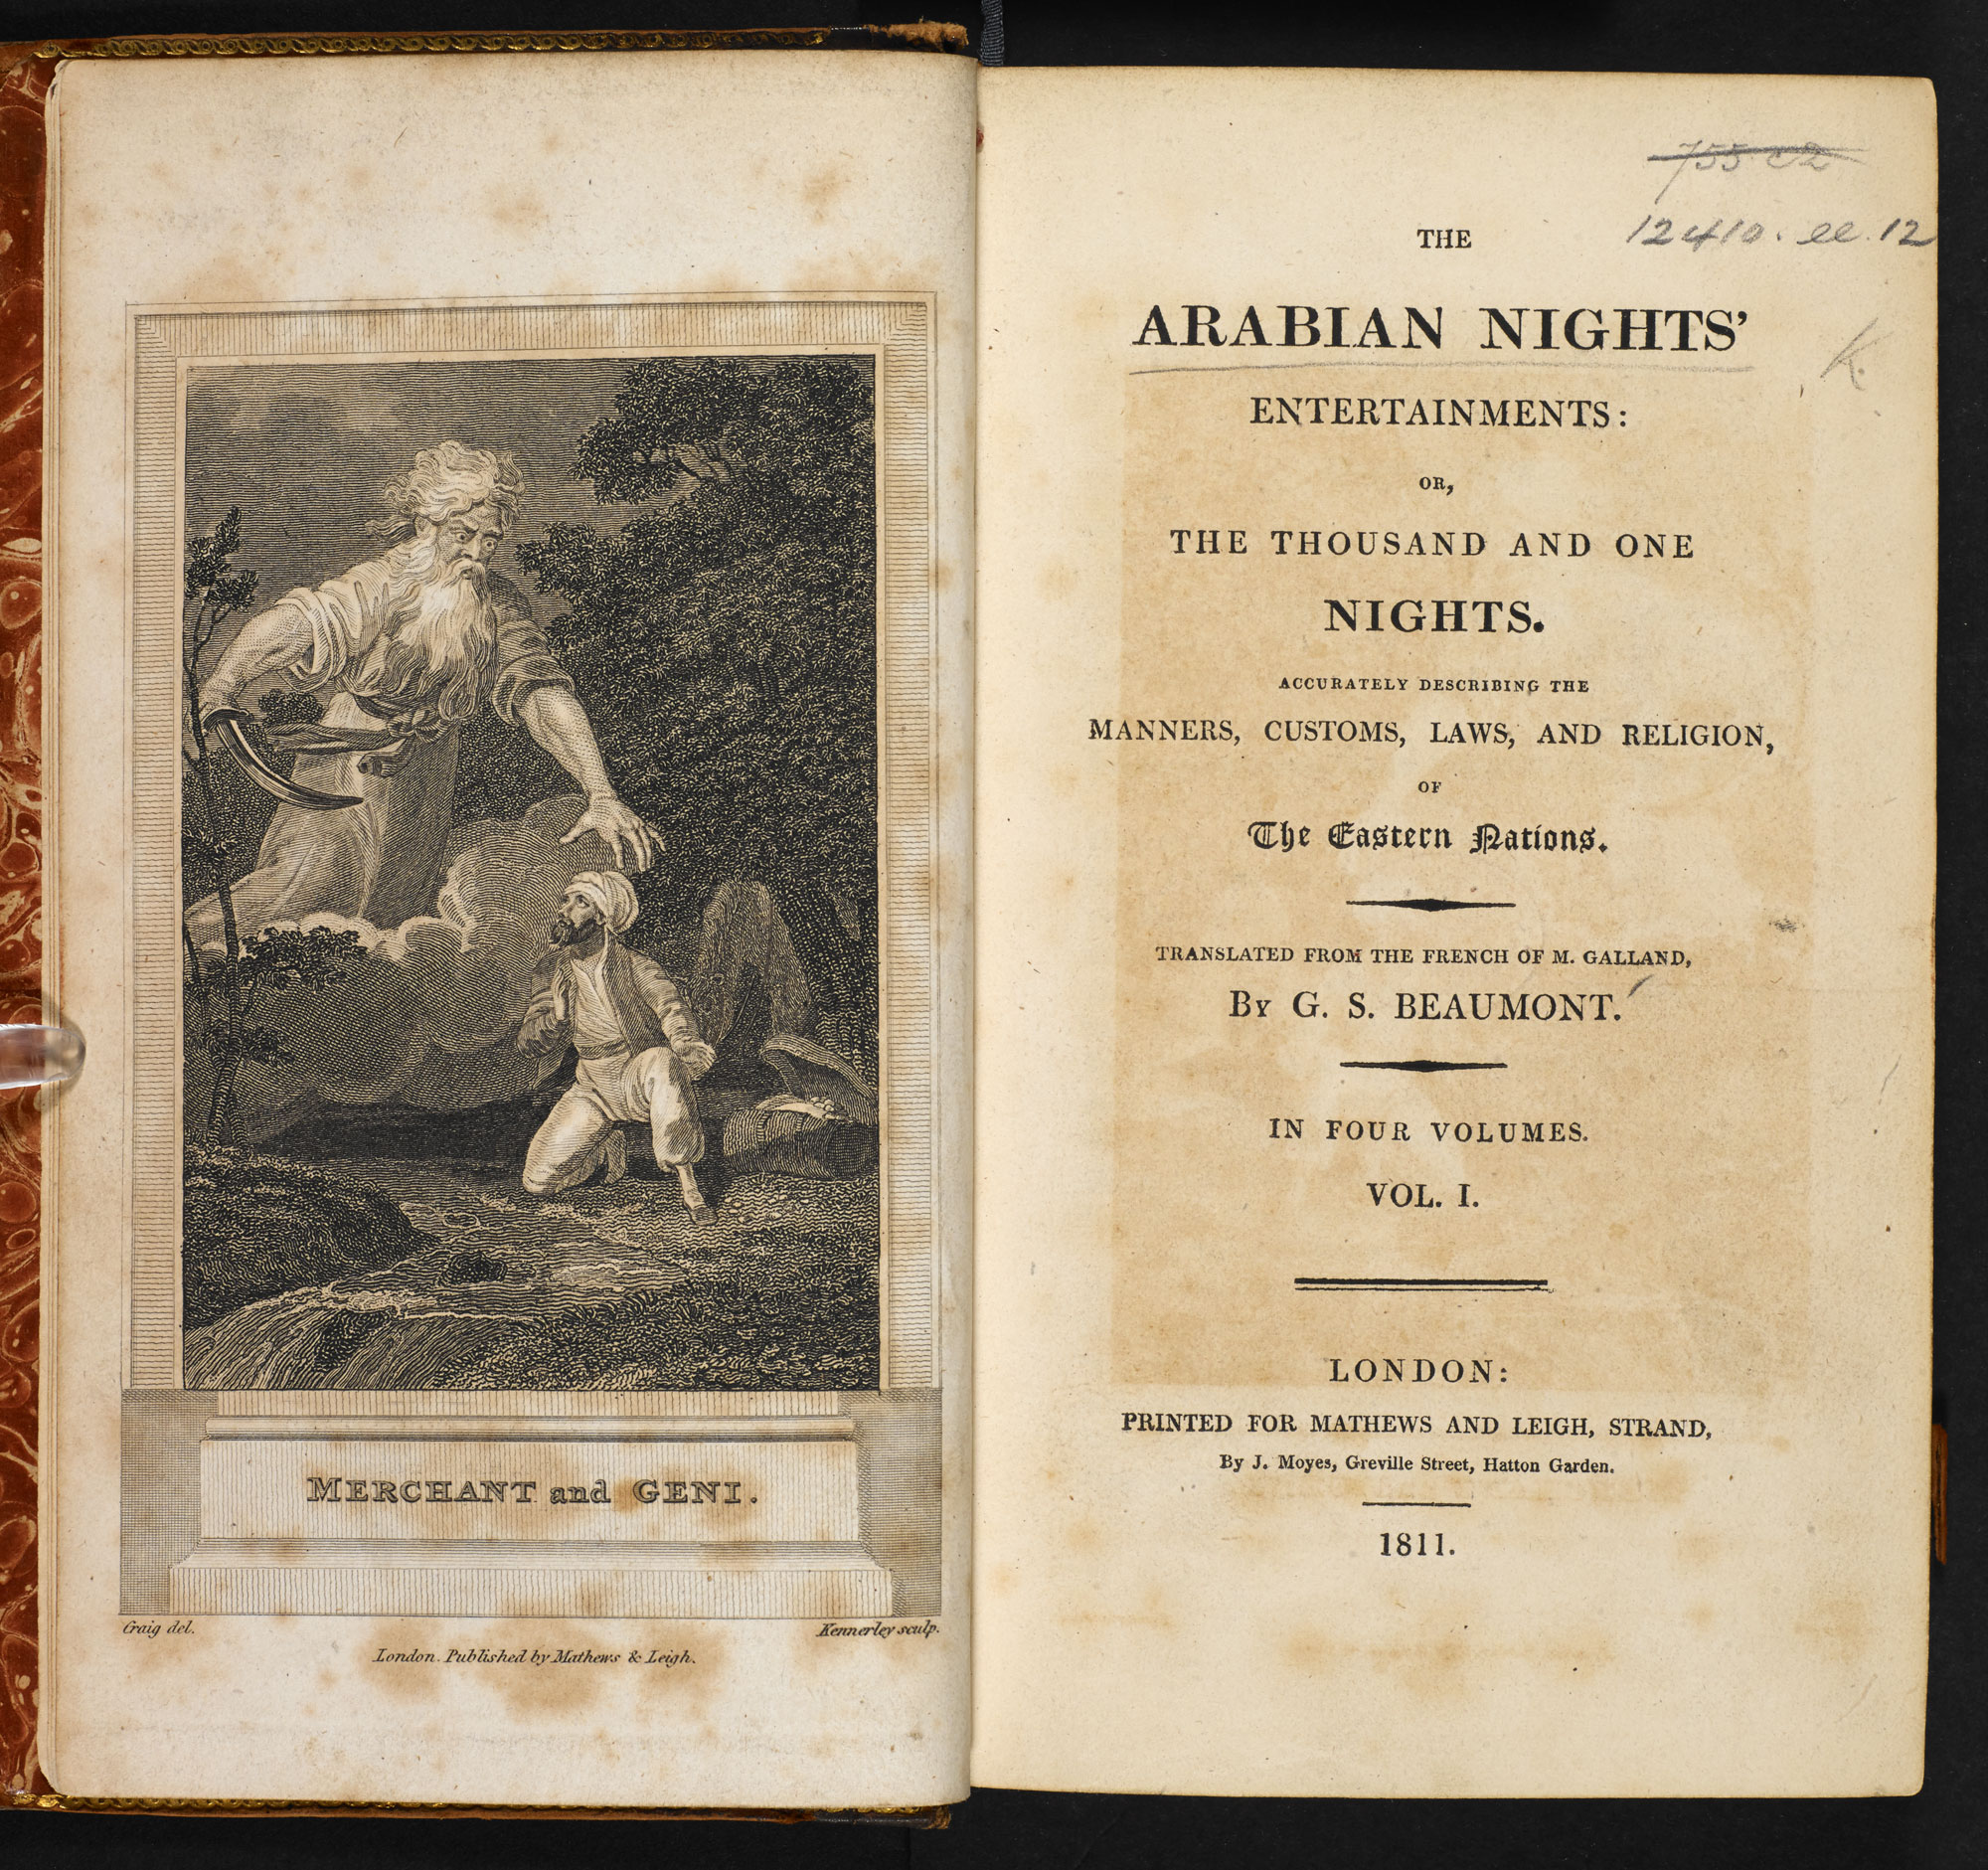 The Arabian Nights Entertainments [page: vol. 1 frontispiece and title page]